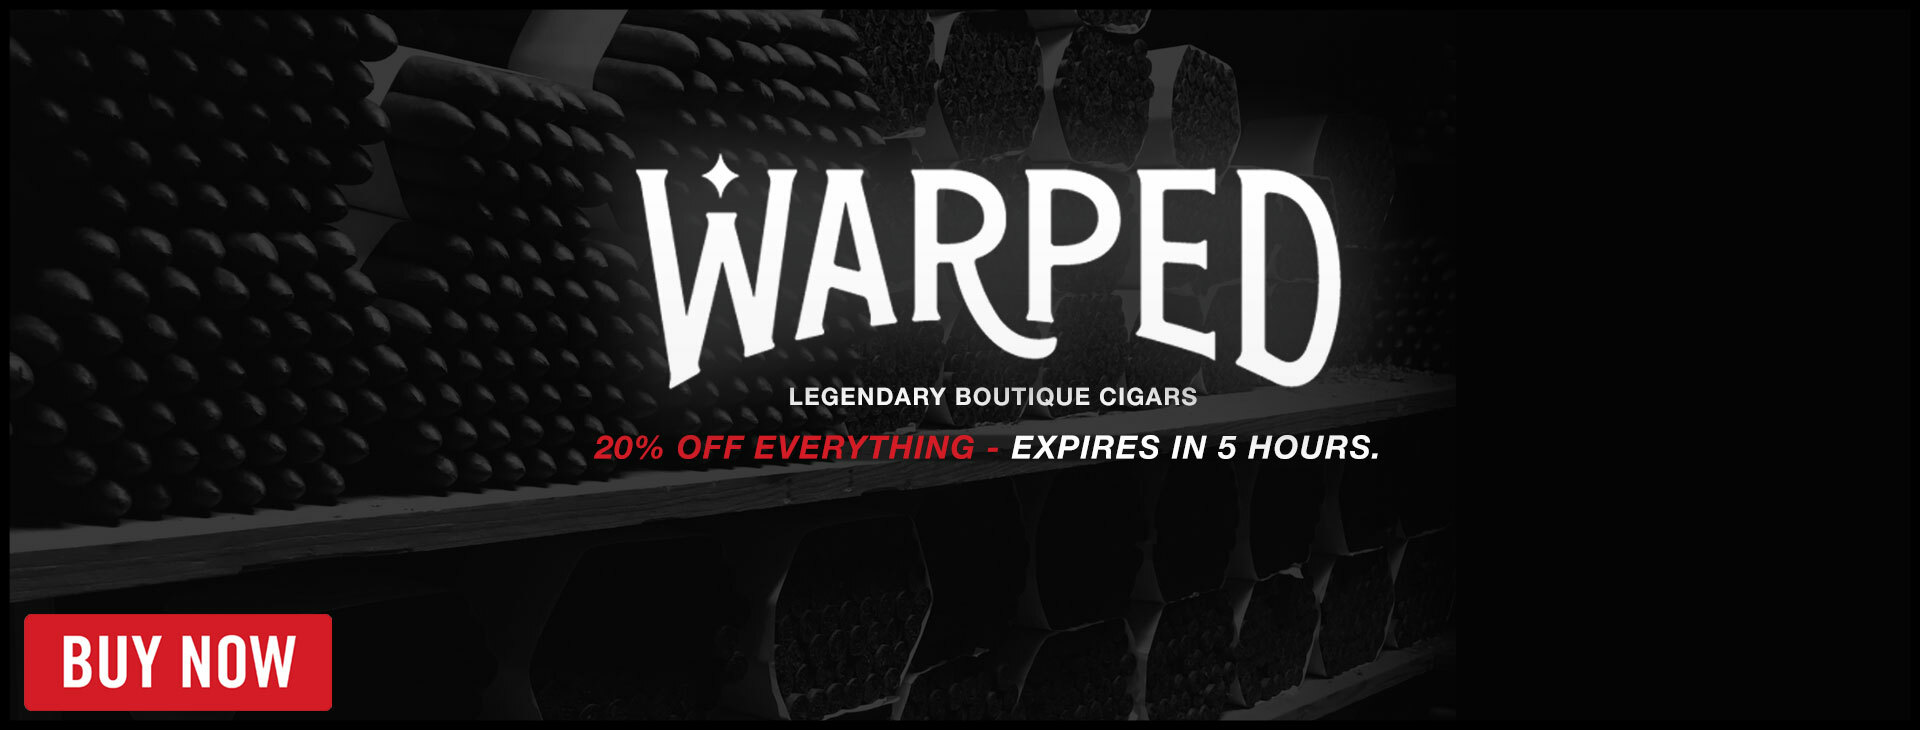 WARPED CIGARS - RARE 20% OFF!